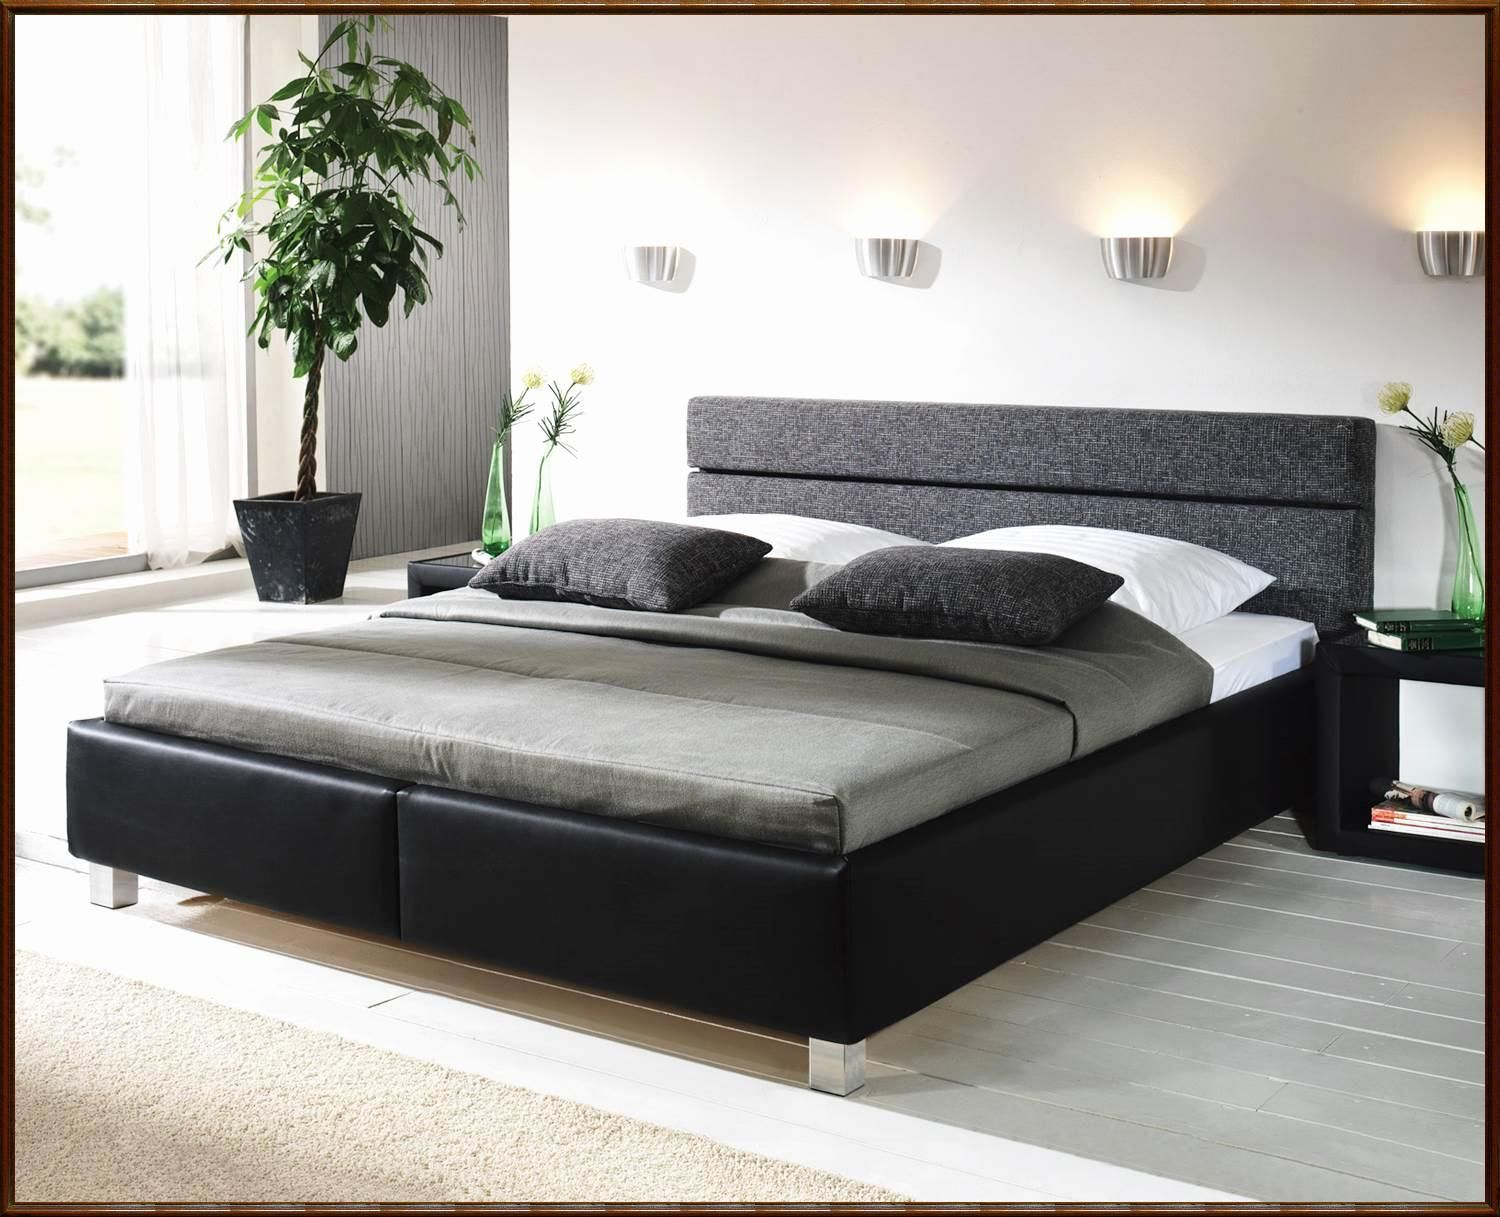 Nice Schlafzimmer Ideen Freistehendes Bett That You Must Know You